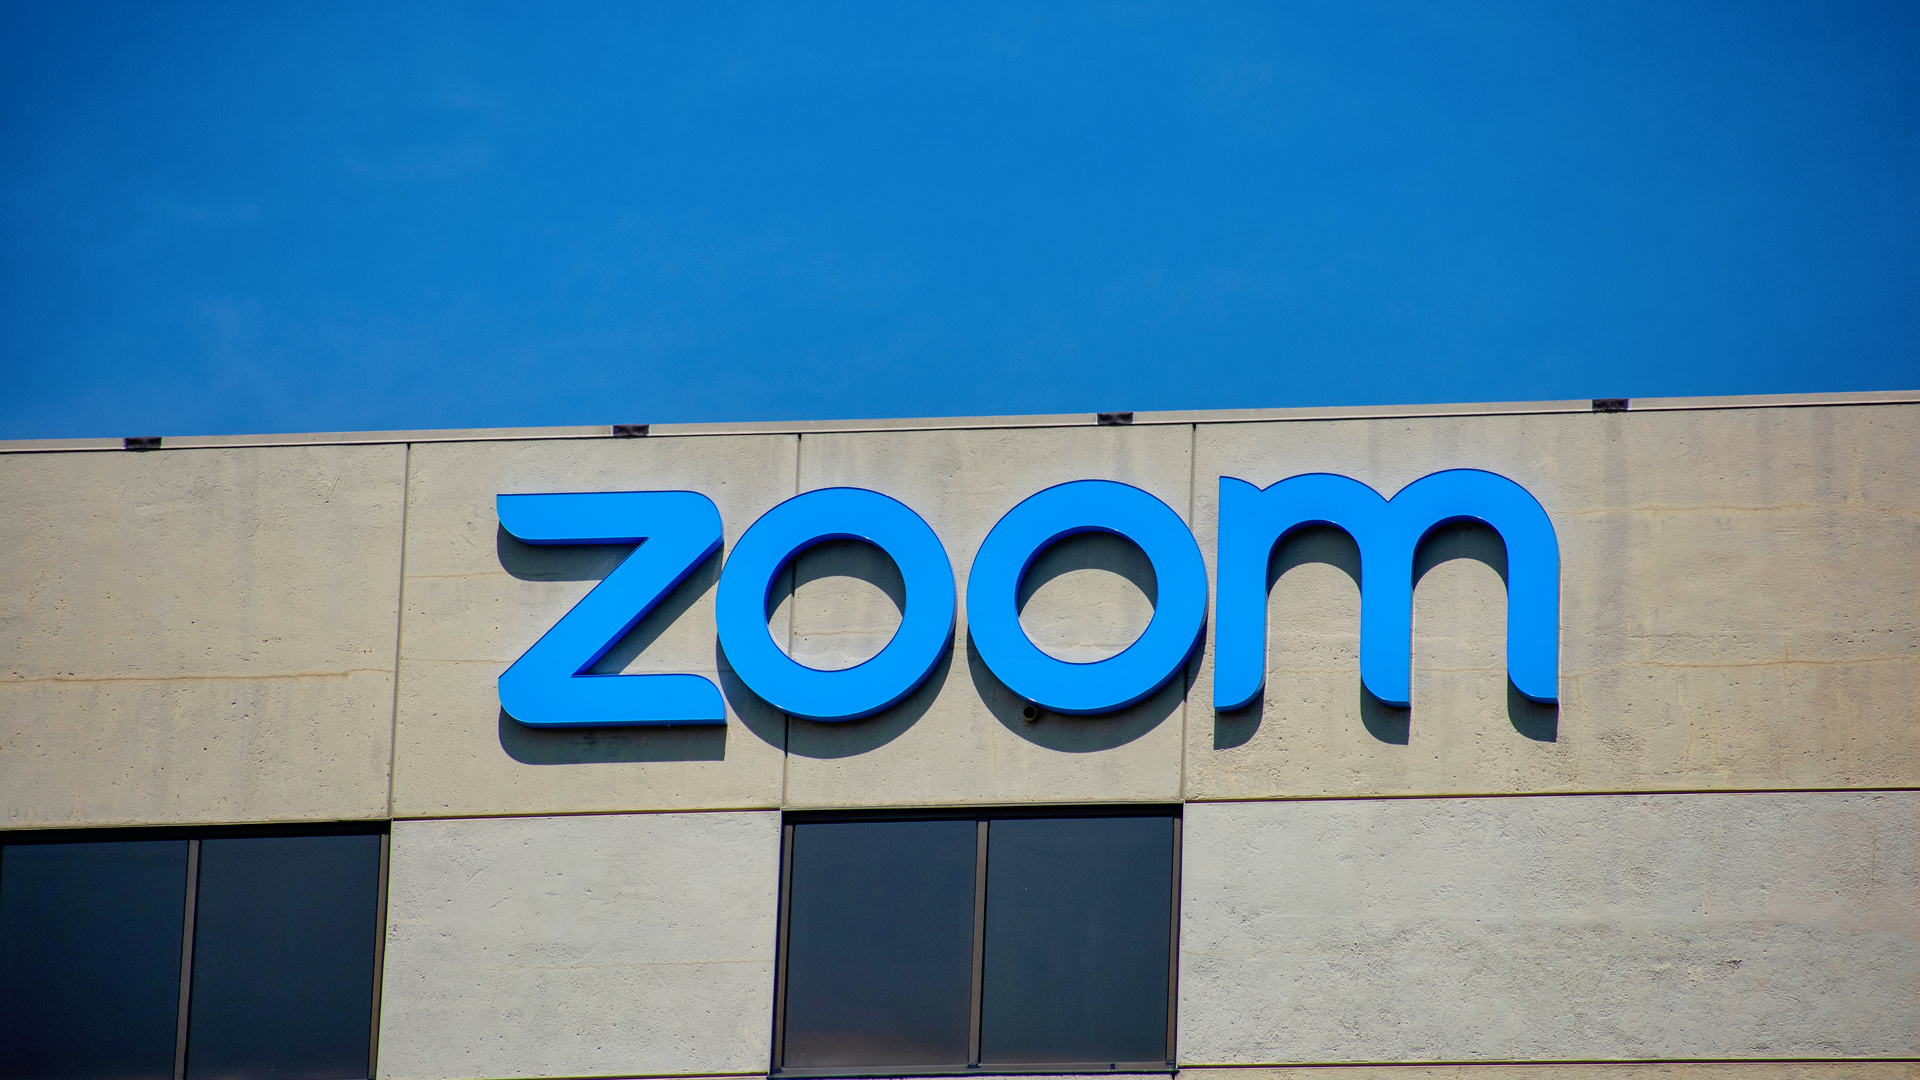 Zoom quietly corrects misleading claims of over 300 million daily users | IT PRO